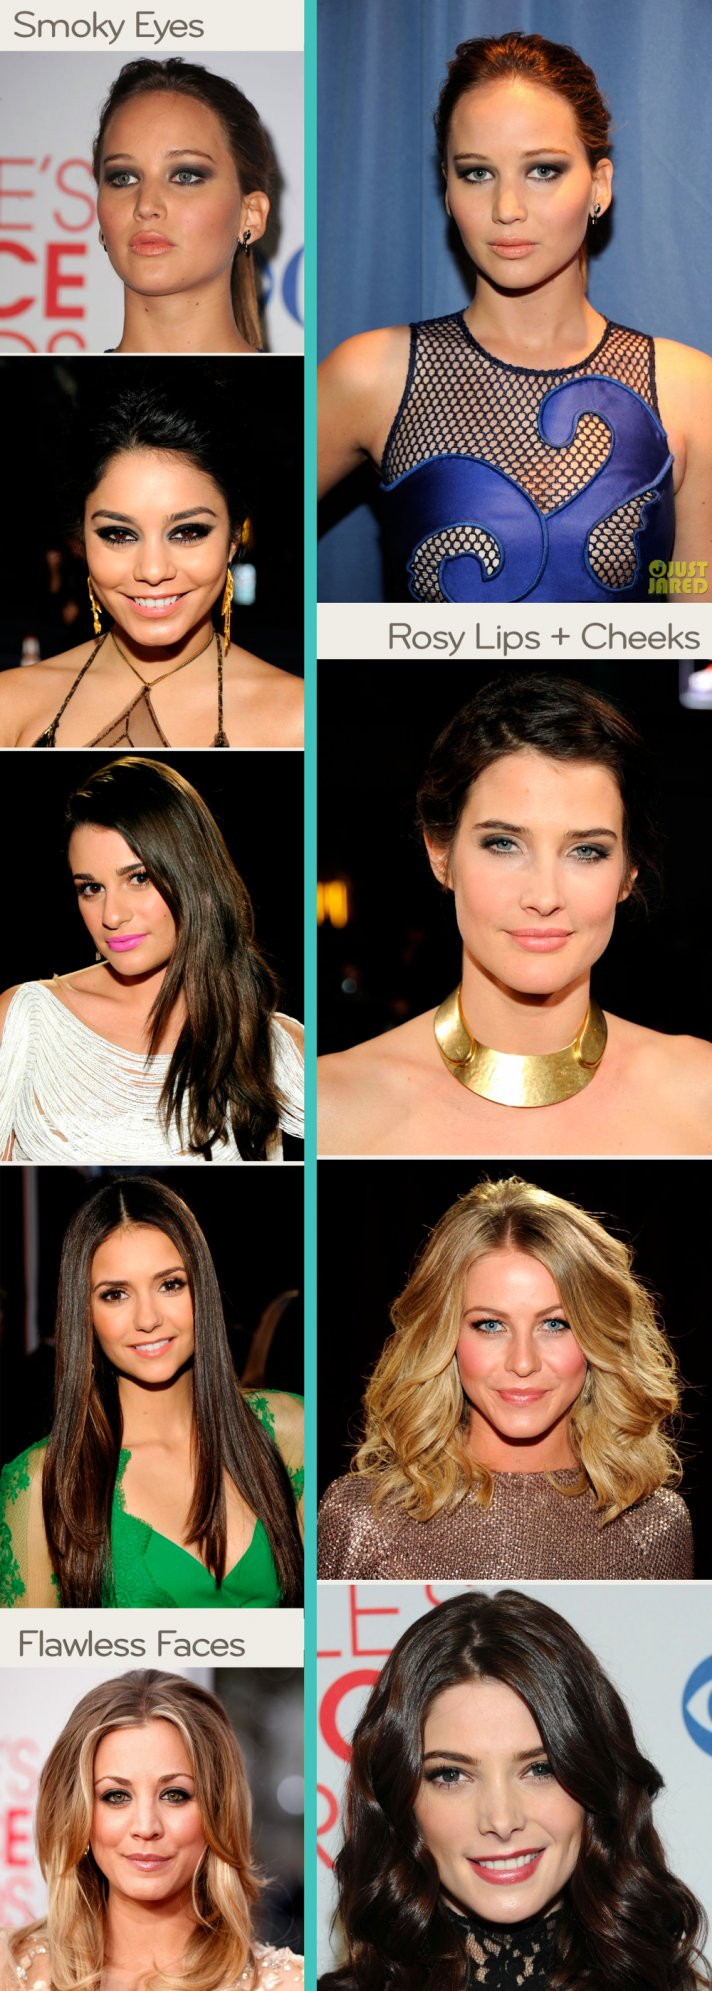 Wedding hair and makeup inspiration from the red carpet- 2012 People's Choice